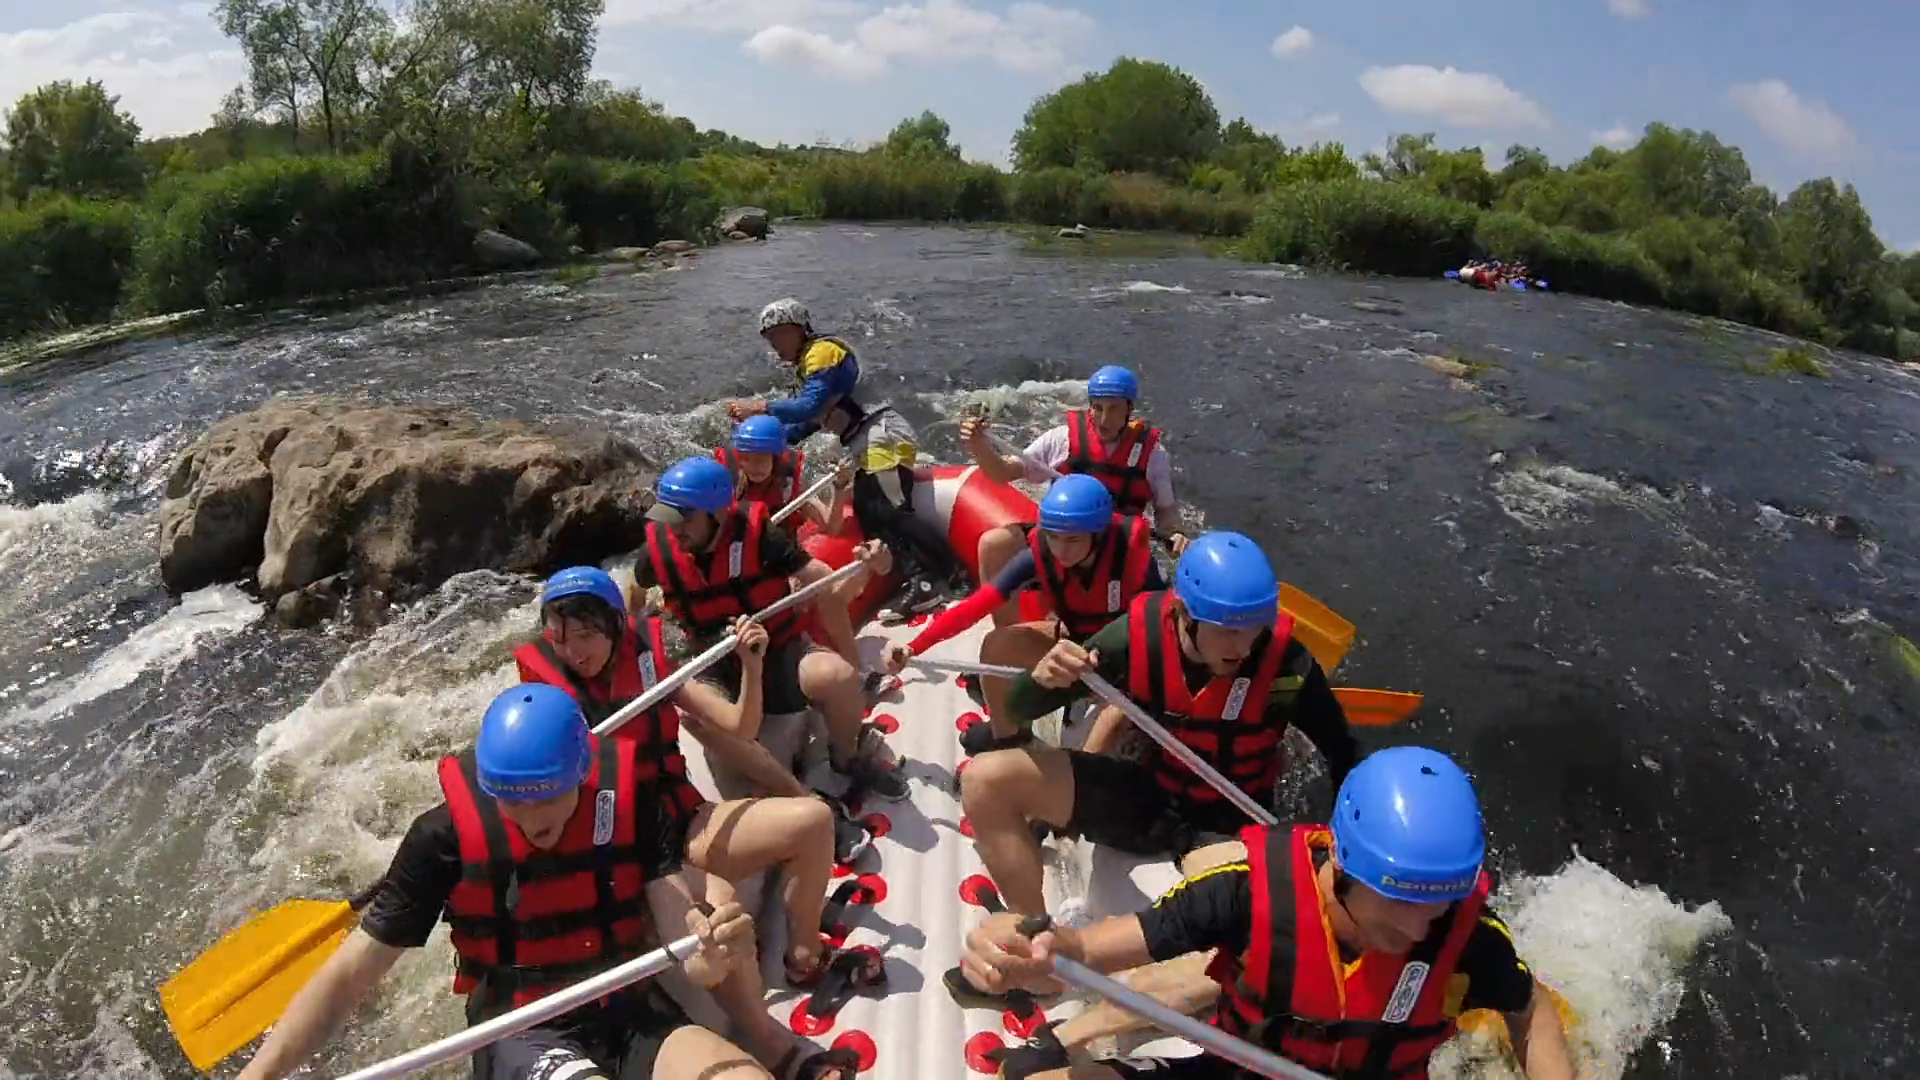 Rafting at the Black Cheremosh River